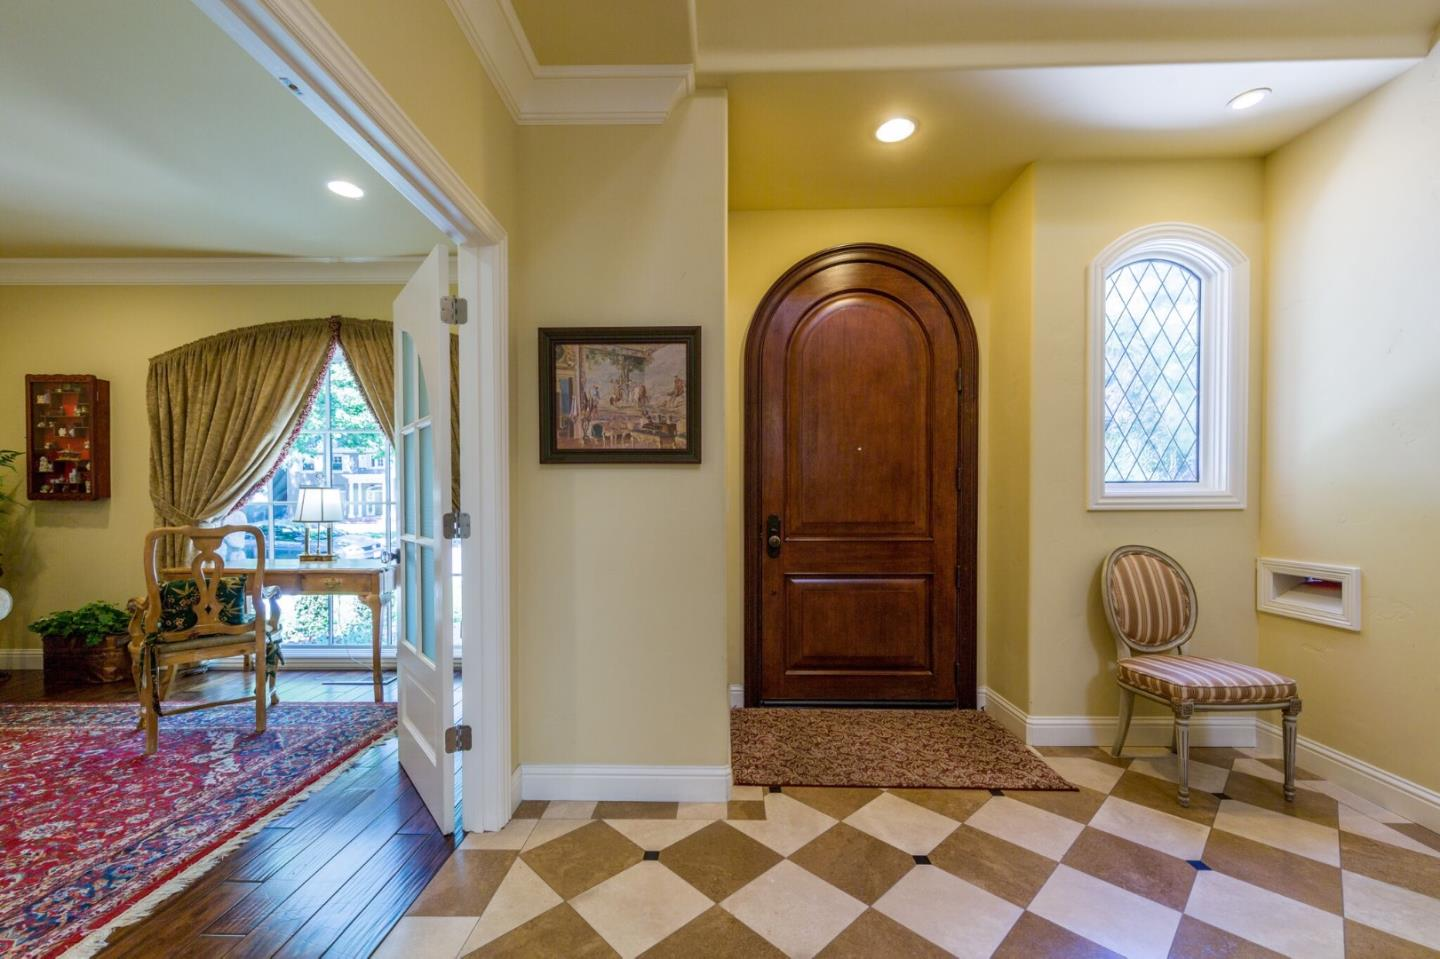 Additional photo for property listing at 1225 Cherry Avenue  San Jose, カリフォルニア 95125 アメリカ合衆国